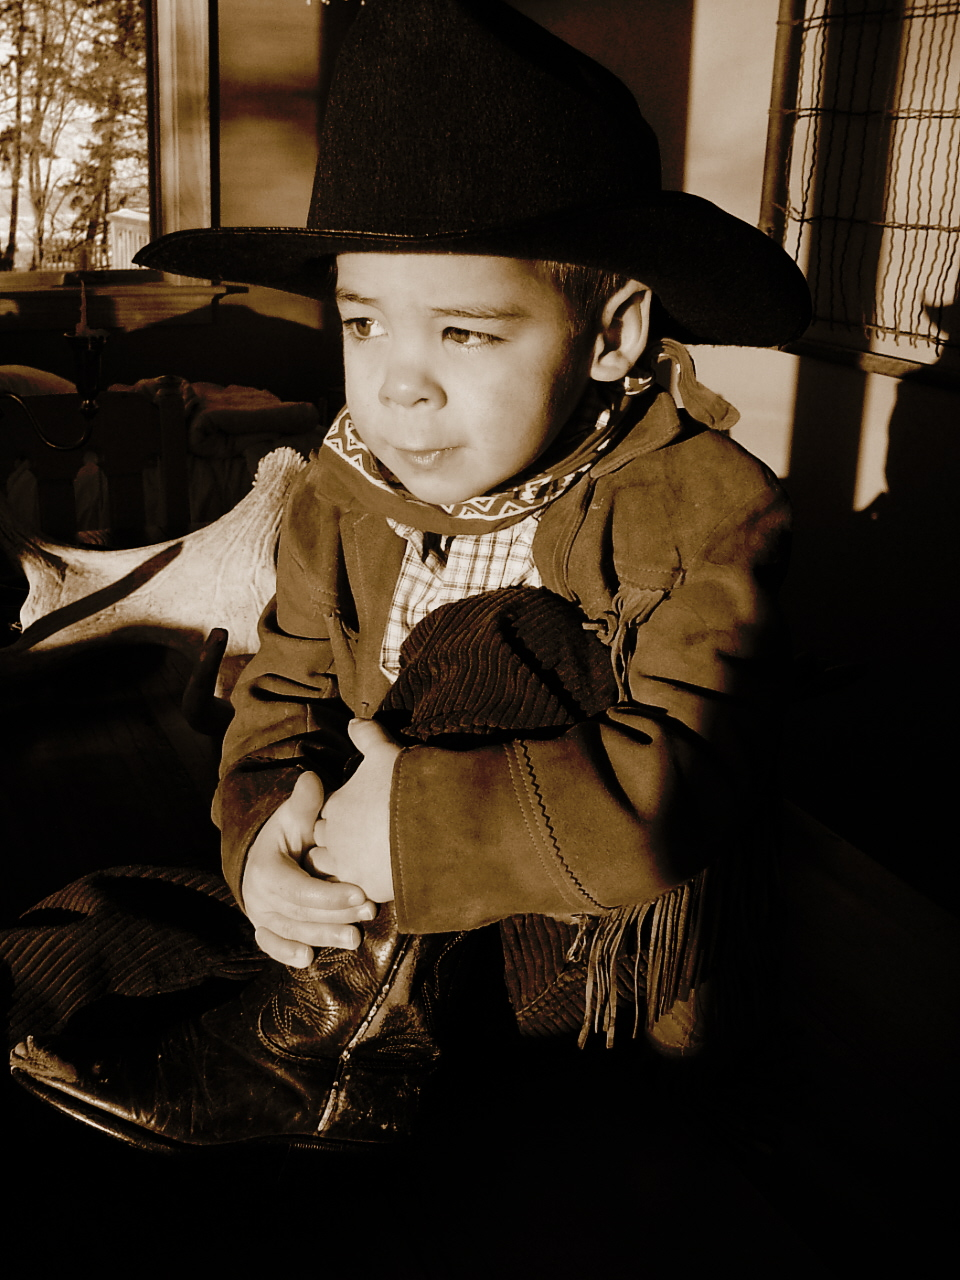 our little cowboy...